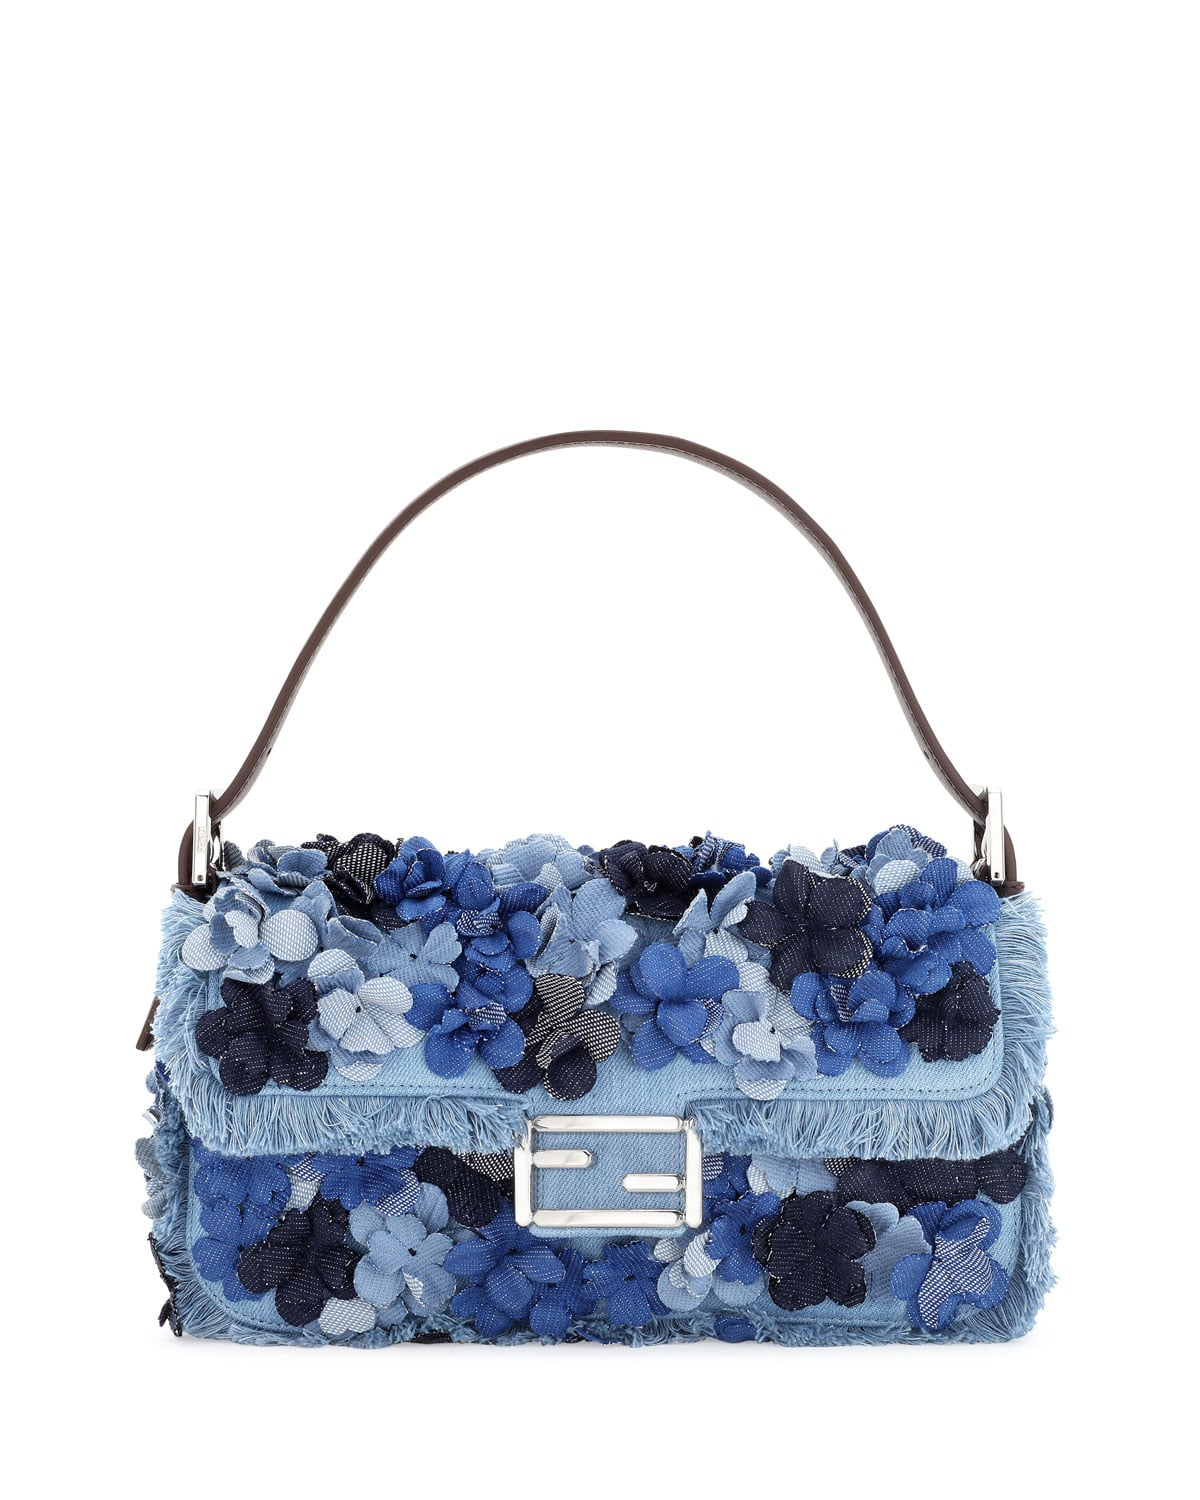 Fendi Resort 2017 Bag Collection Featuring Floral Bags ...